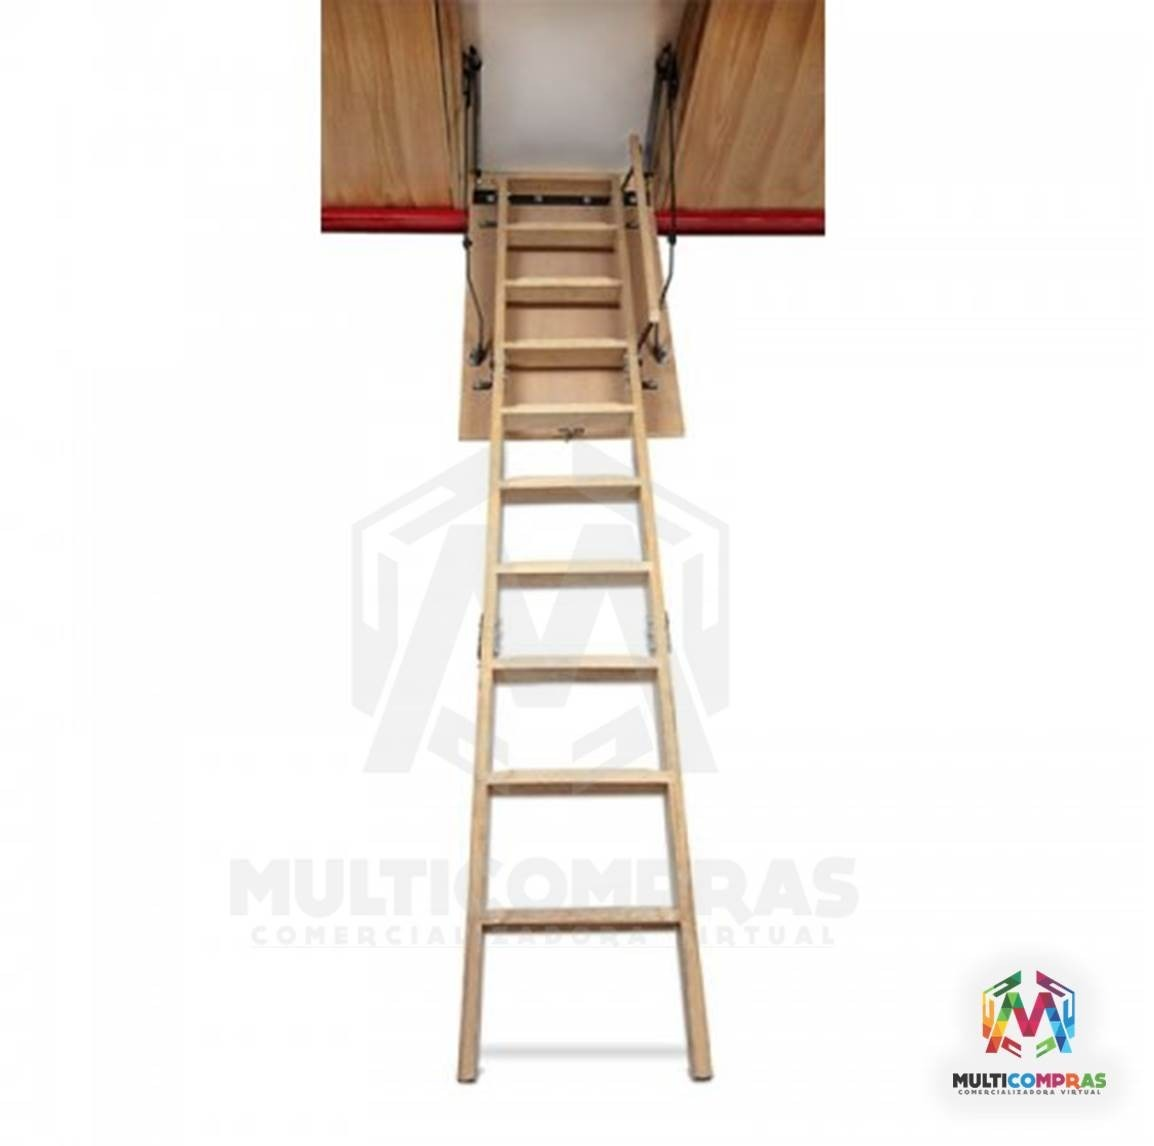 Escaleras madera tico altillo desv n estudio techo cuarto en mercado libre - Escalera plegable altillo ...